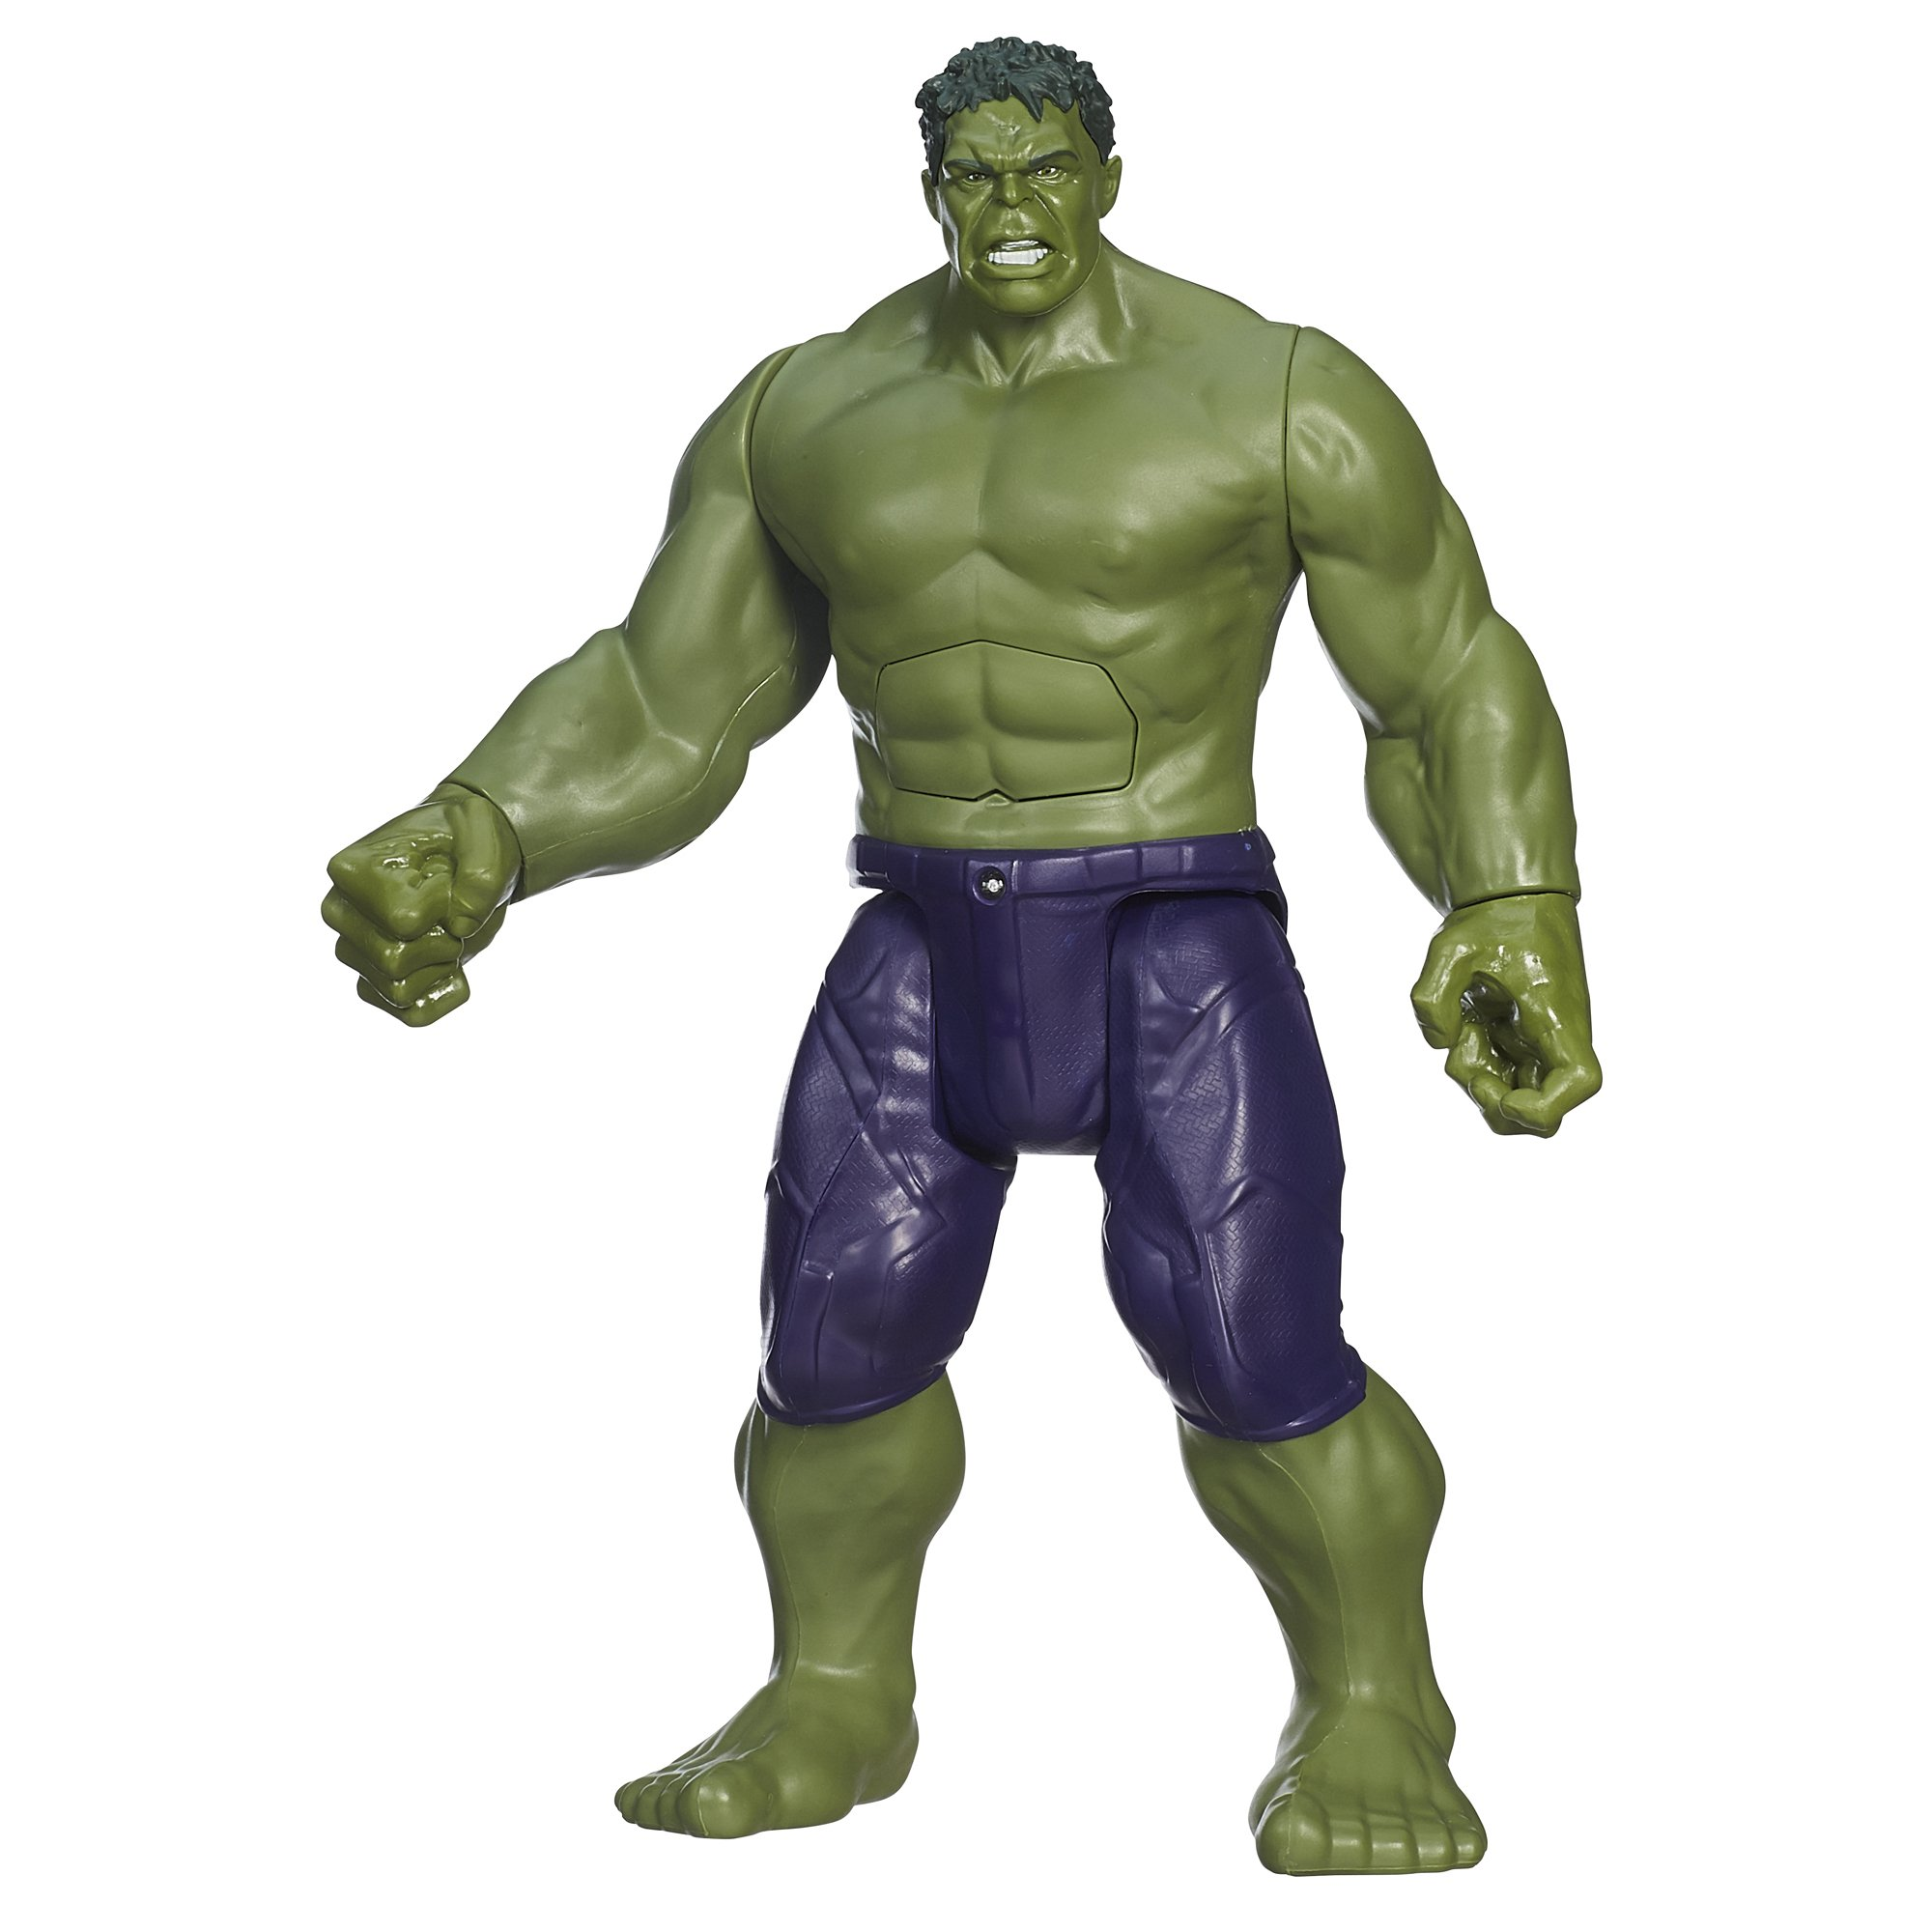 Marvel Avengers Titan Hero Tech Hulk Figure by Marvel